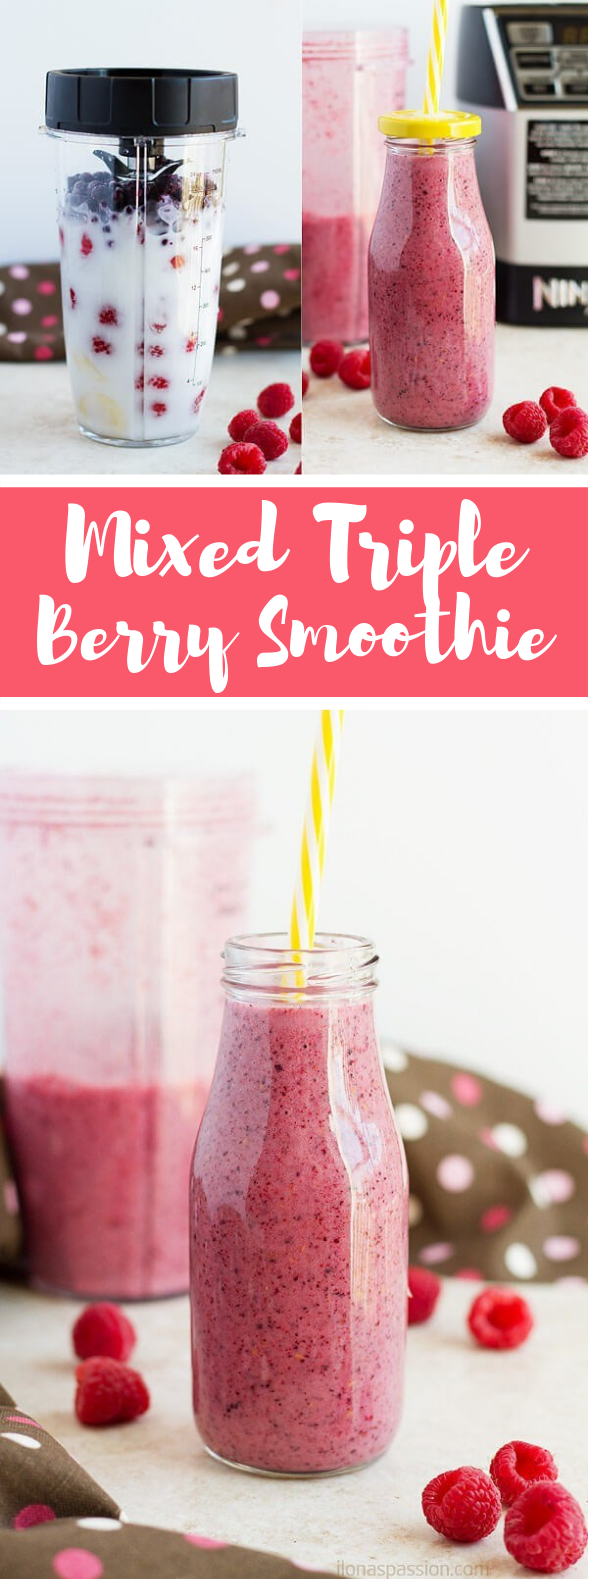 MIXED TRIPLE BERRY SMOOTHIE